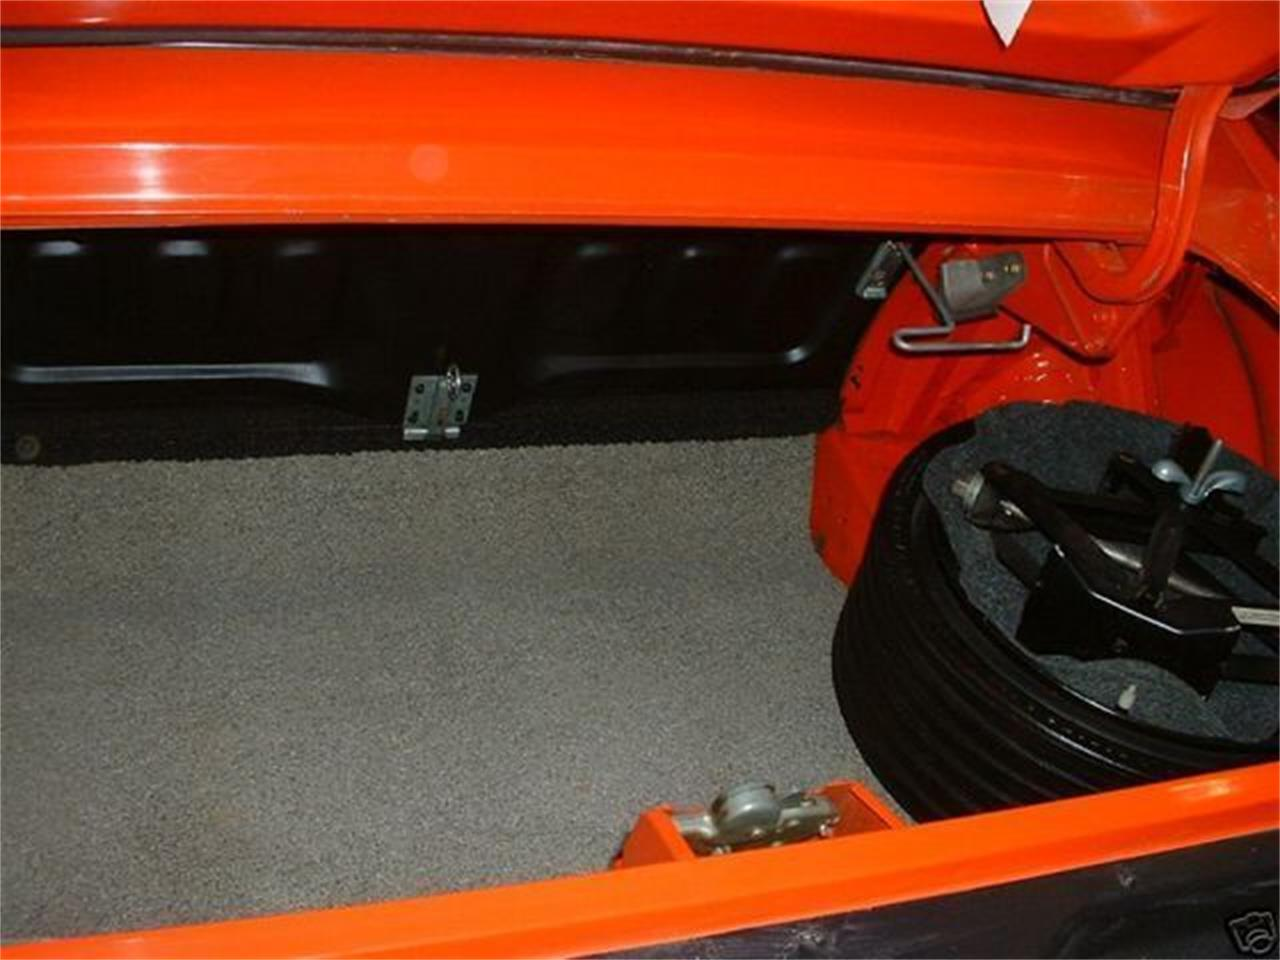 Large Picture of 1969 Mustang - $149,900.00 - L1IT